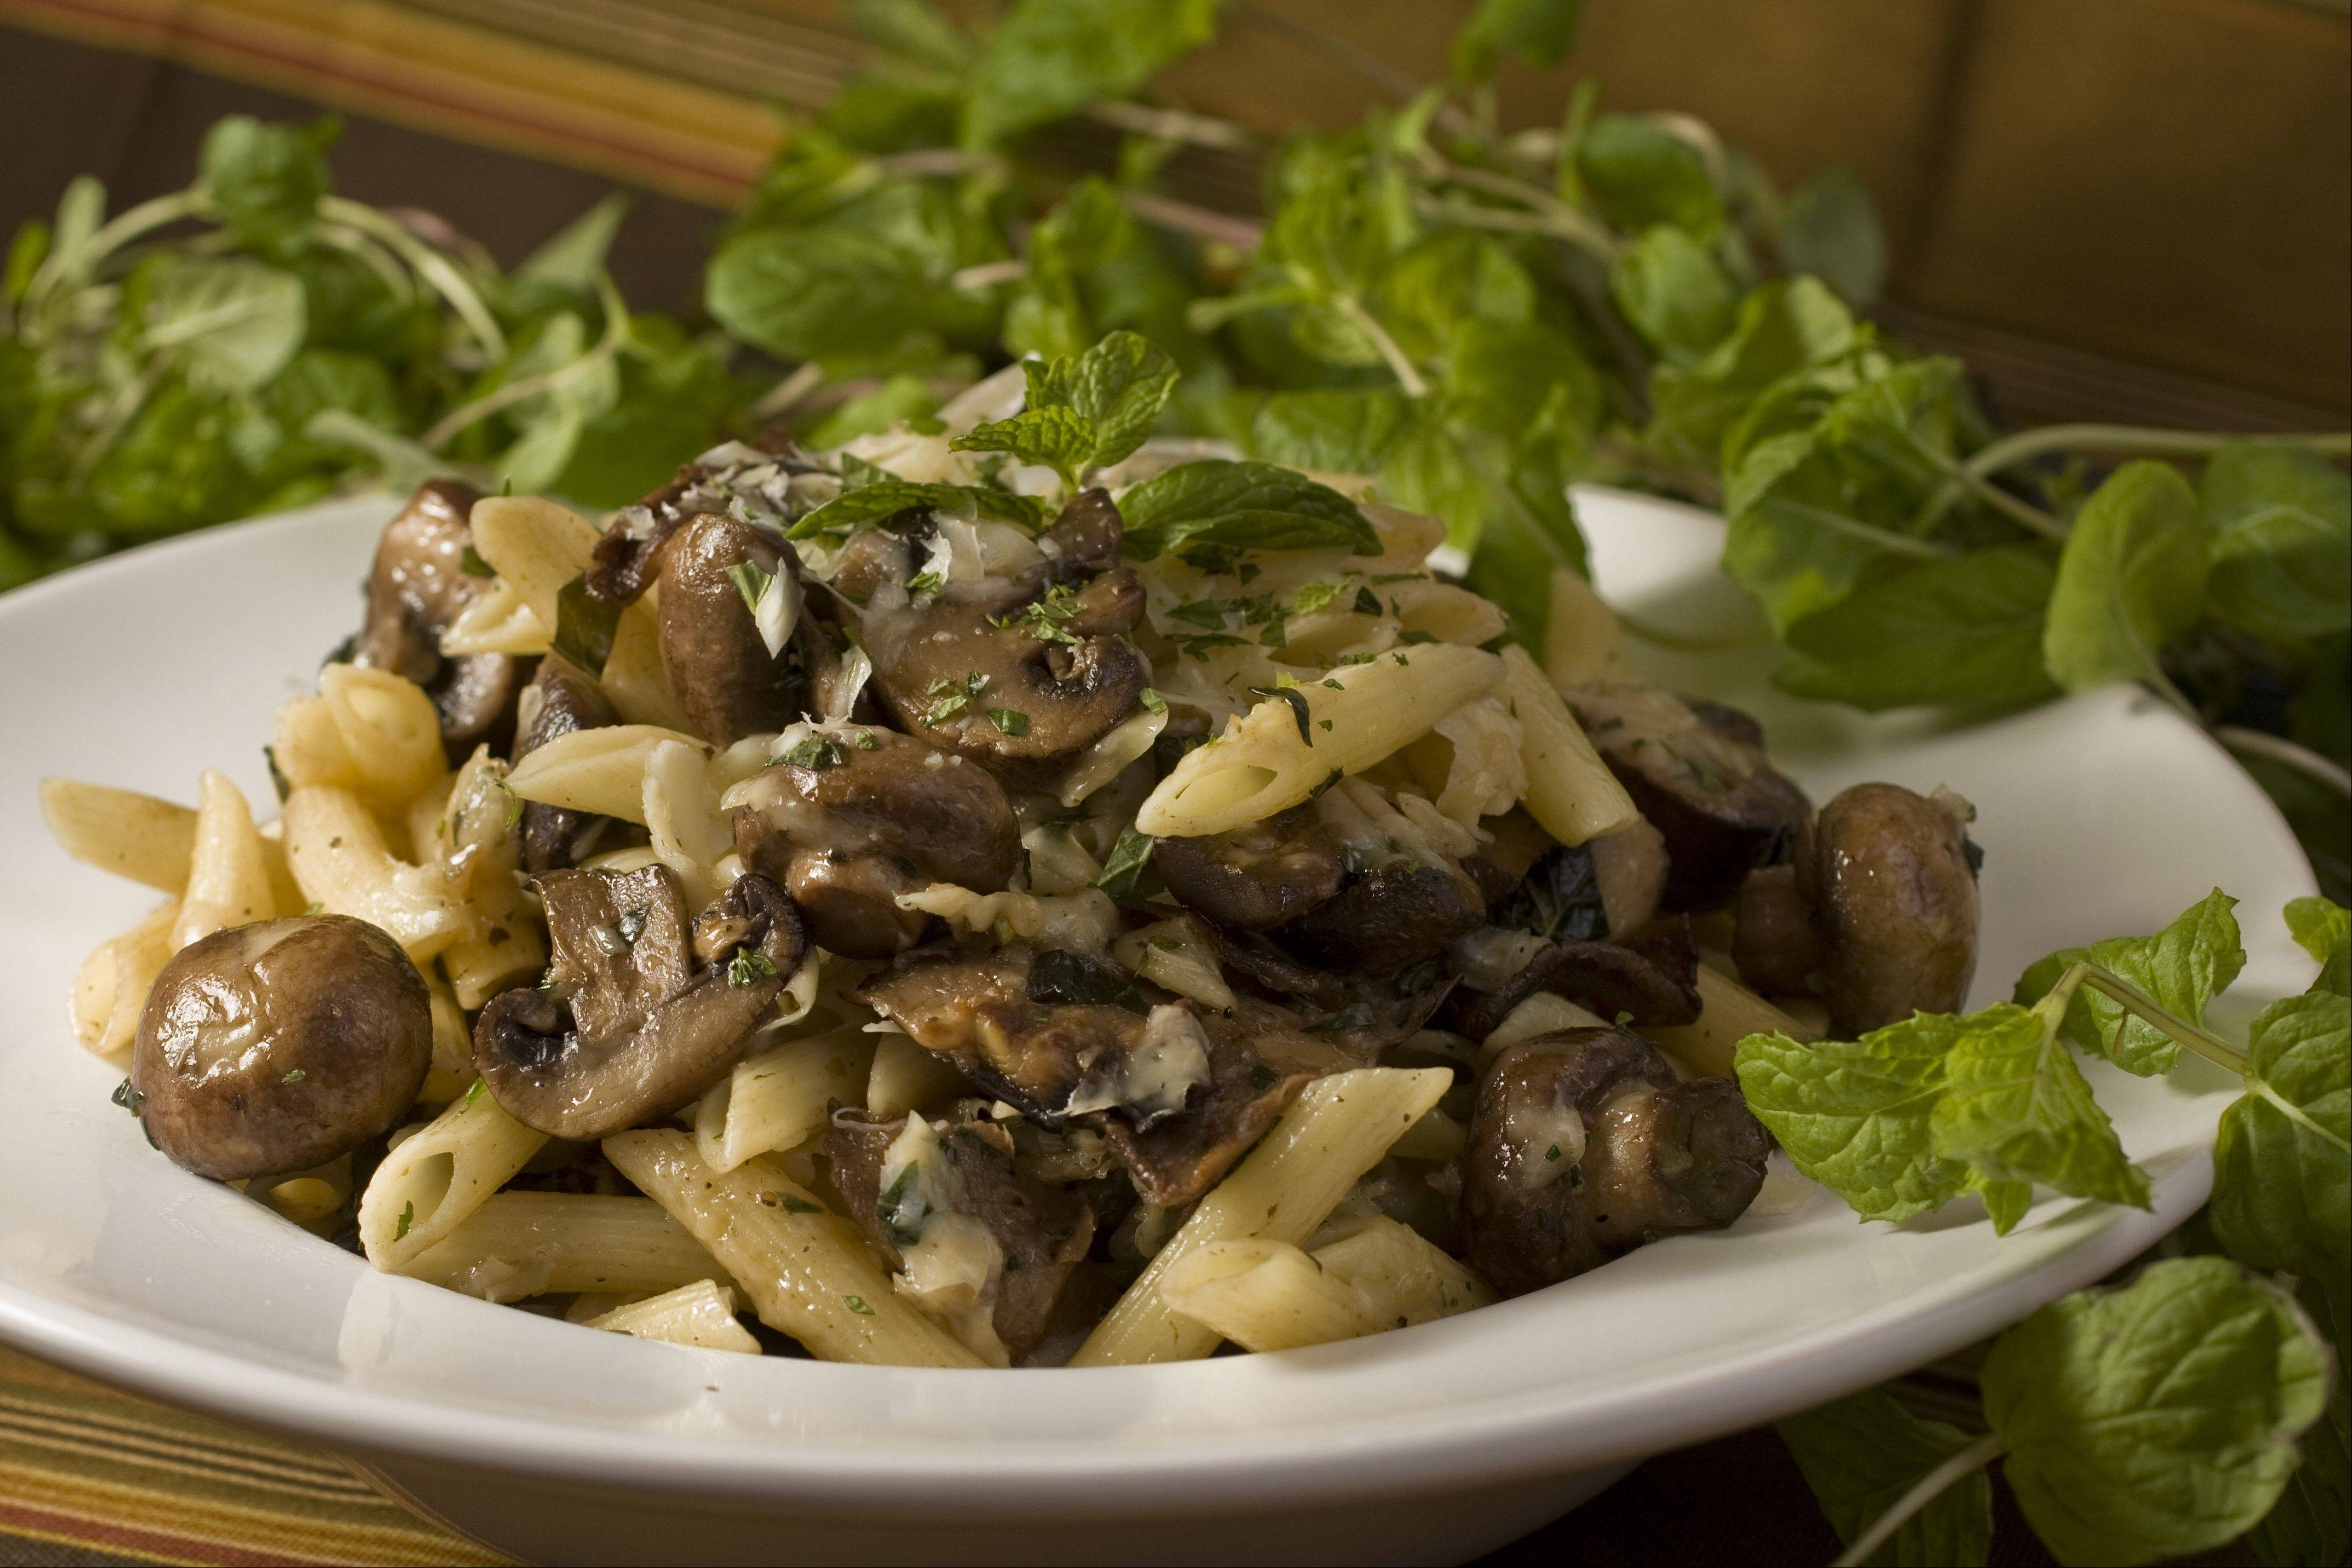 While not as common in the U.S., much of the world finds a place for mint in their savory cooking. The mint in this Penne With Mushroom and Mint invigorates the meatiness of the wild mushrooms.